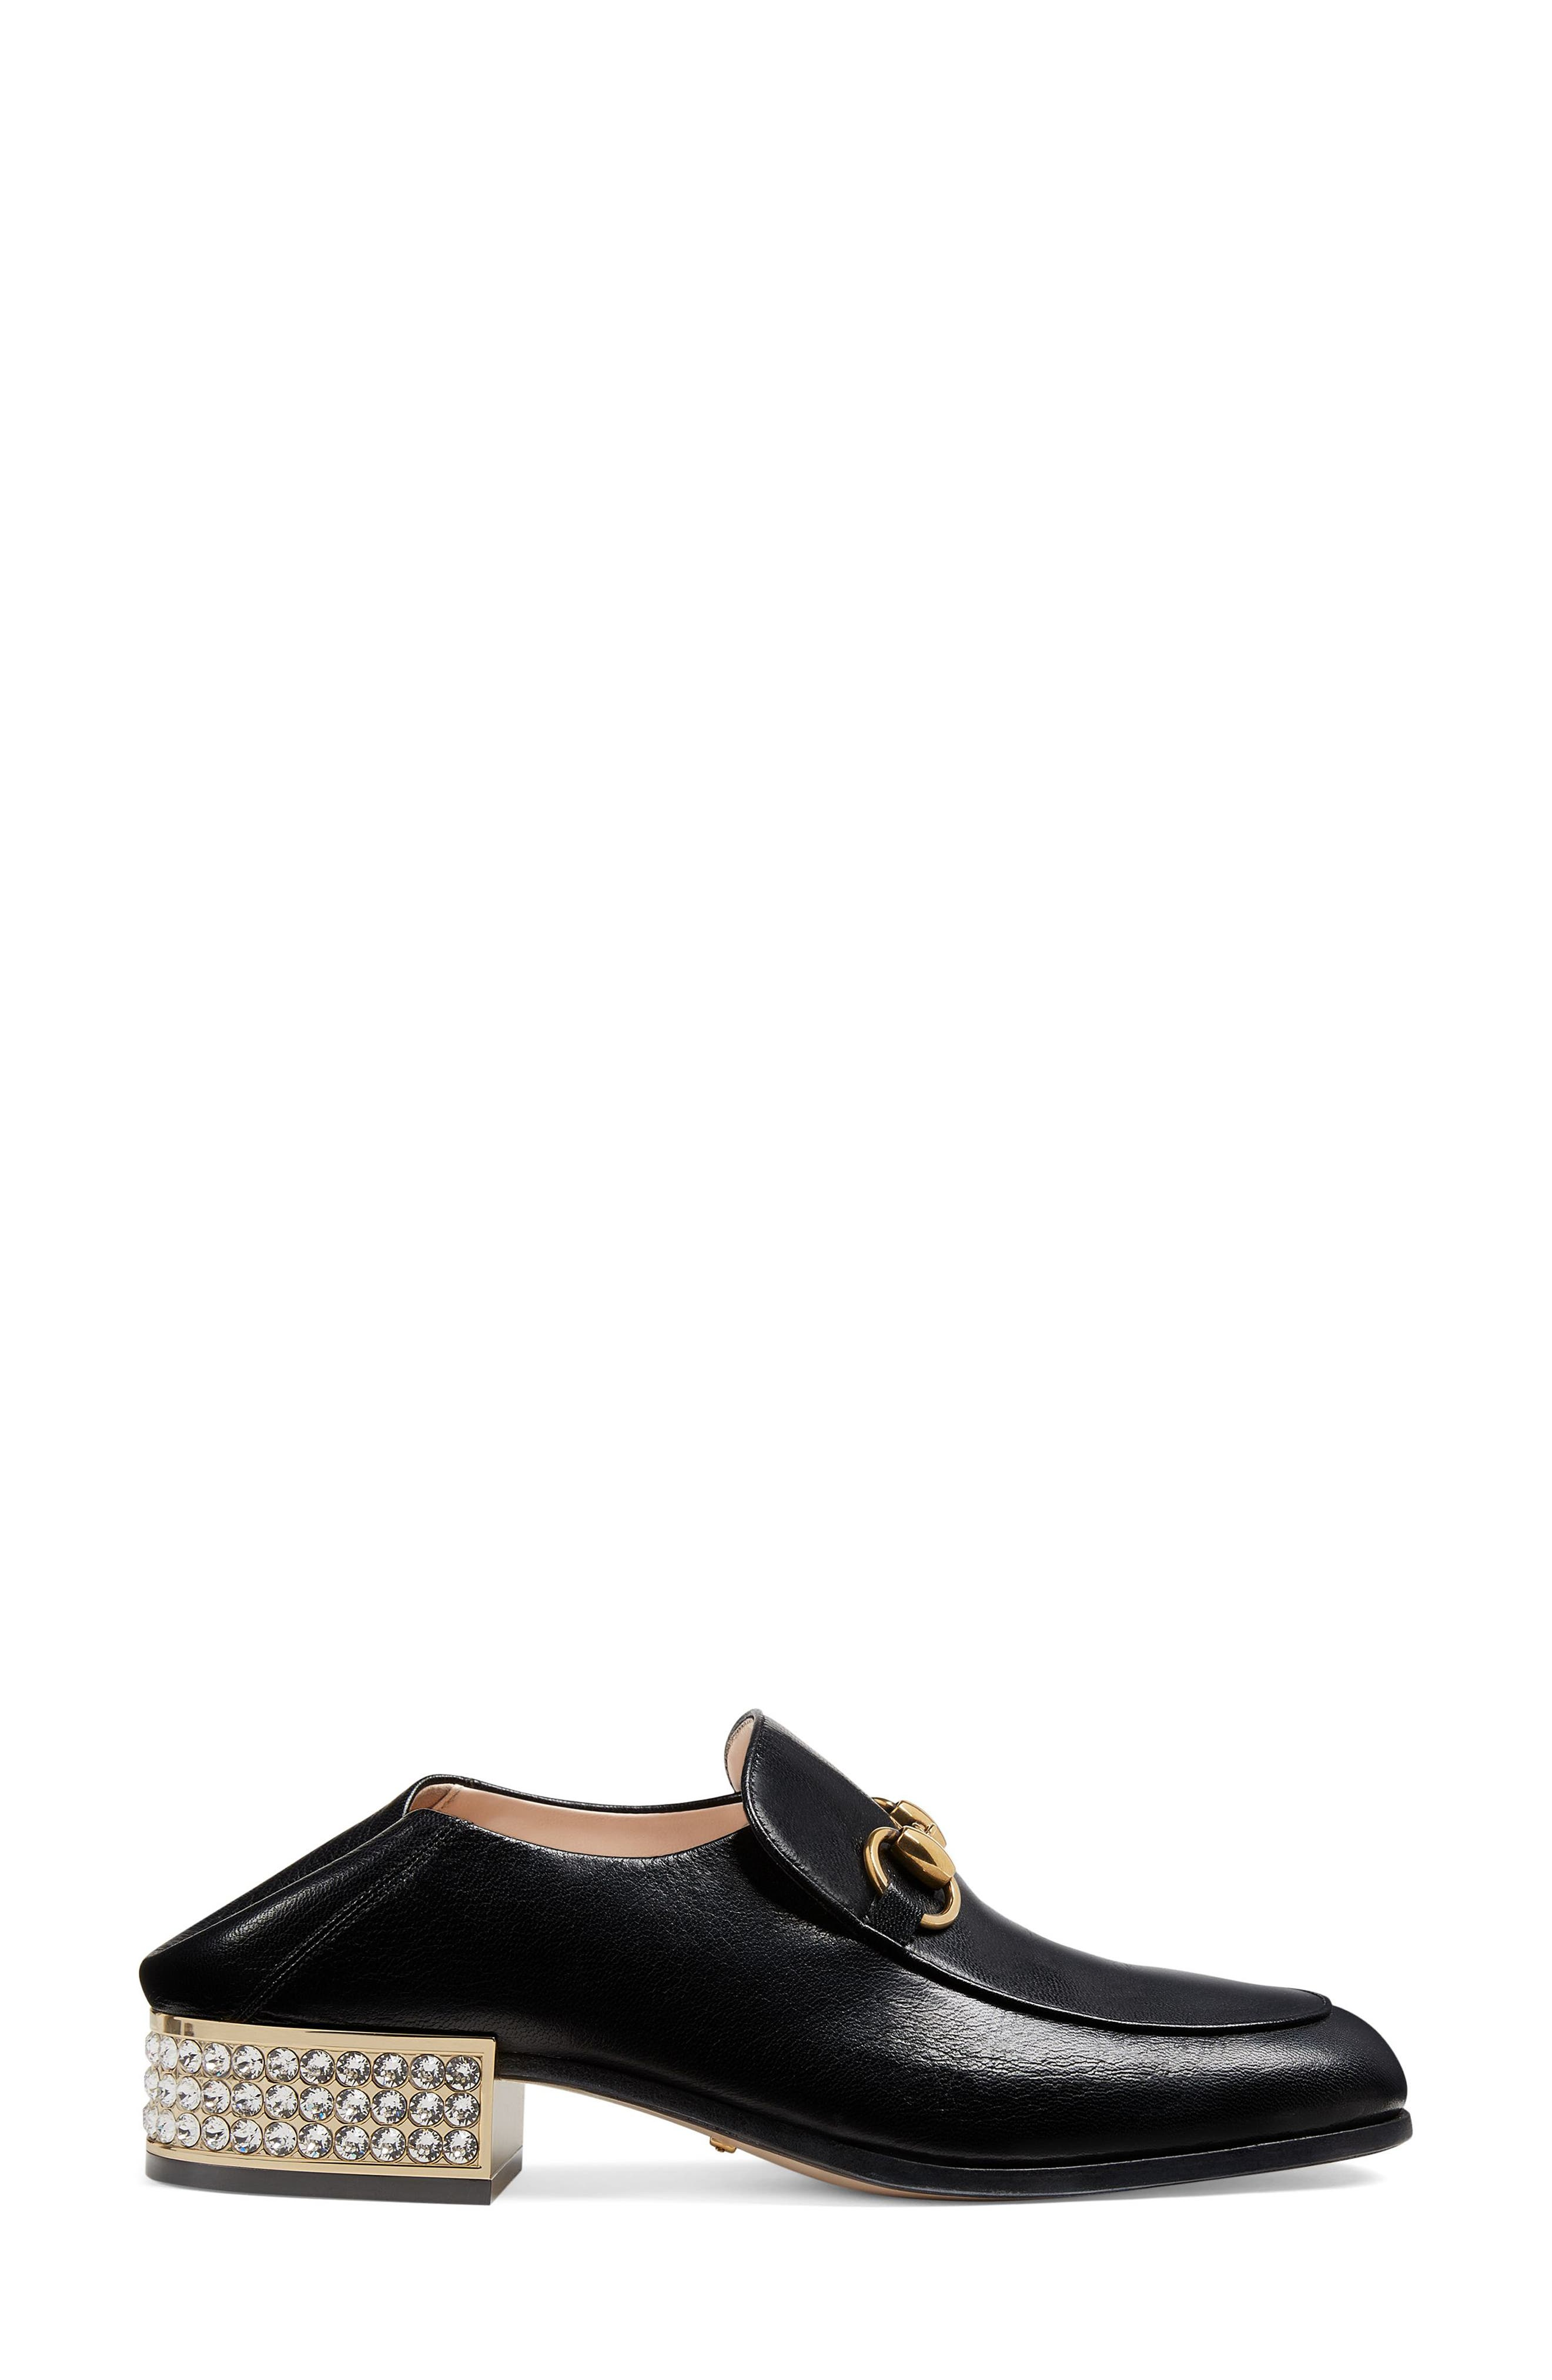 Mister Crystal Convertible Loafer,                             Alternate thumbnail 2, color,                             Black